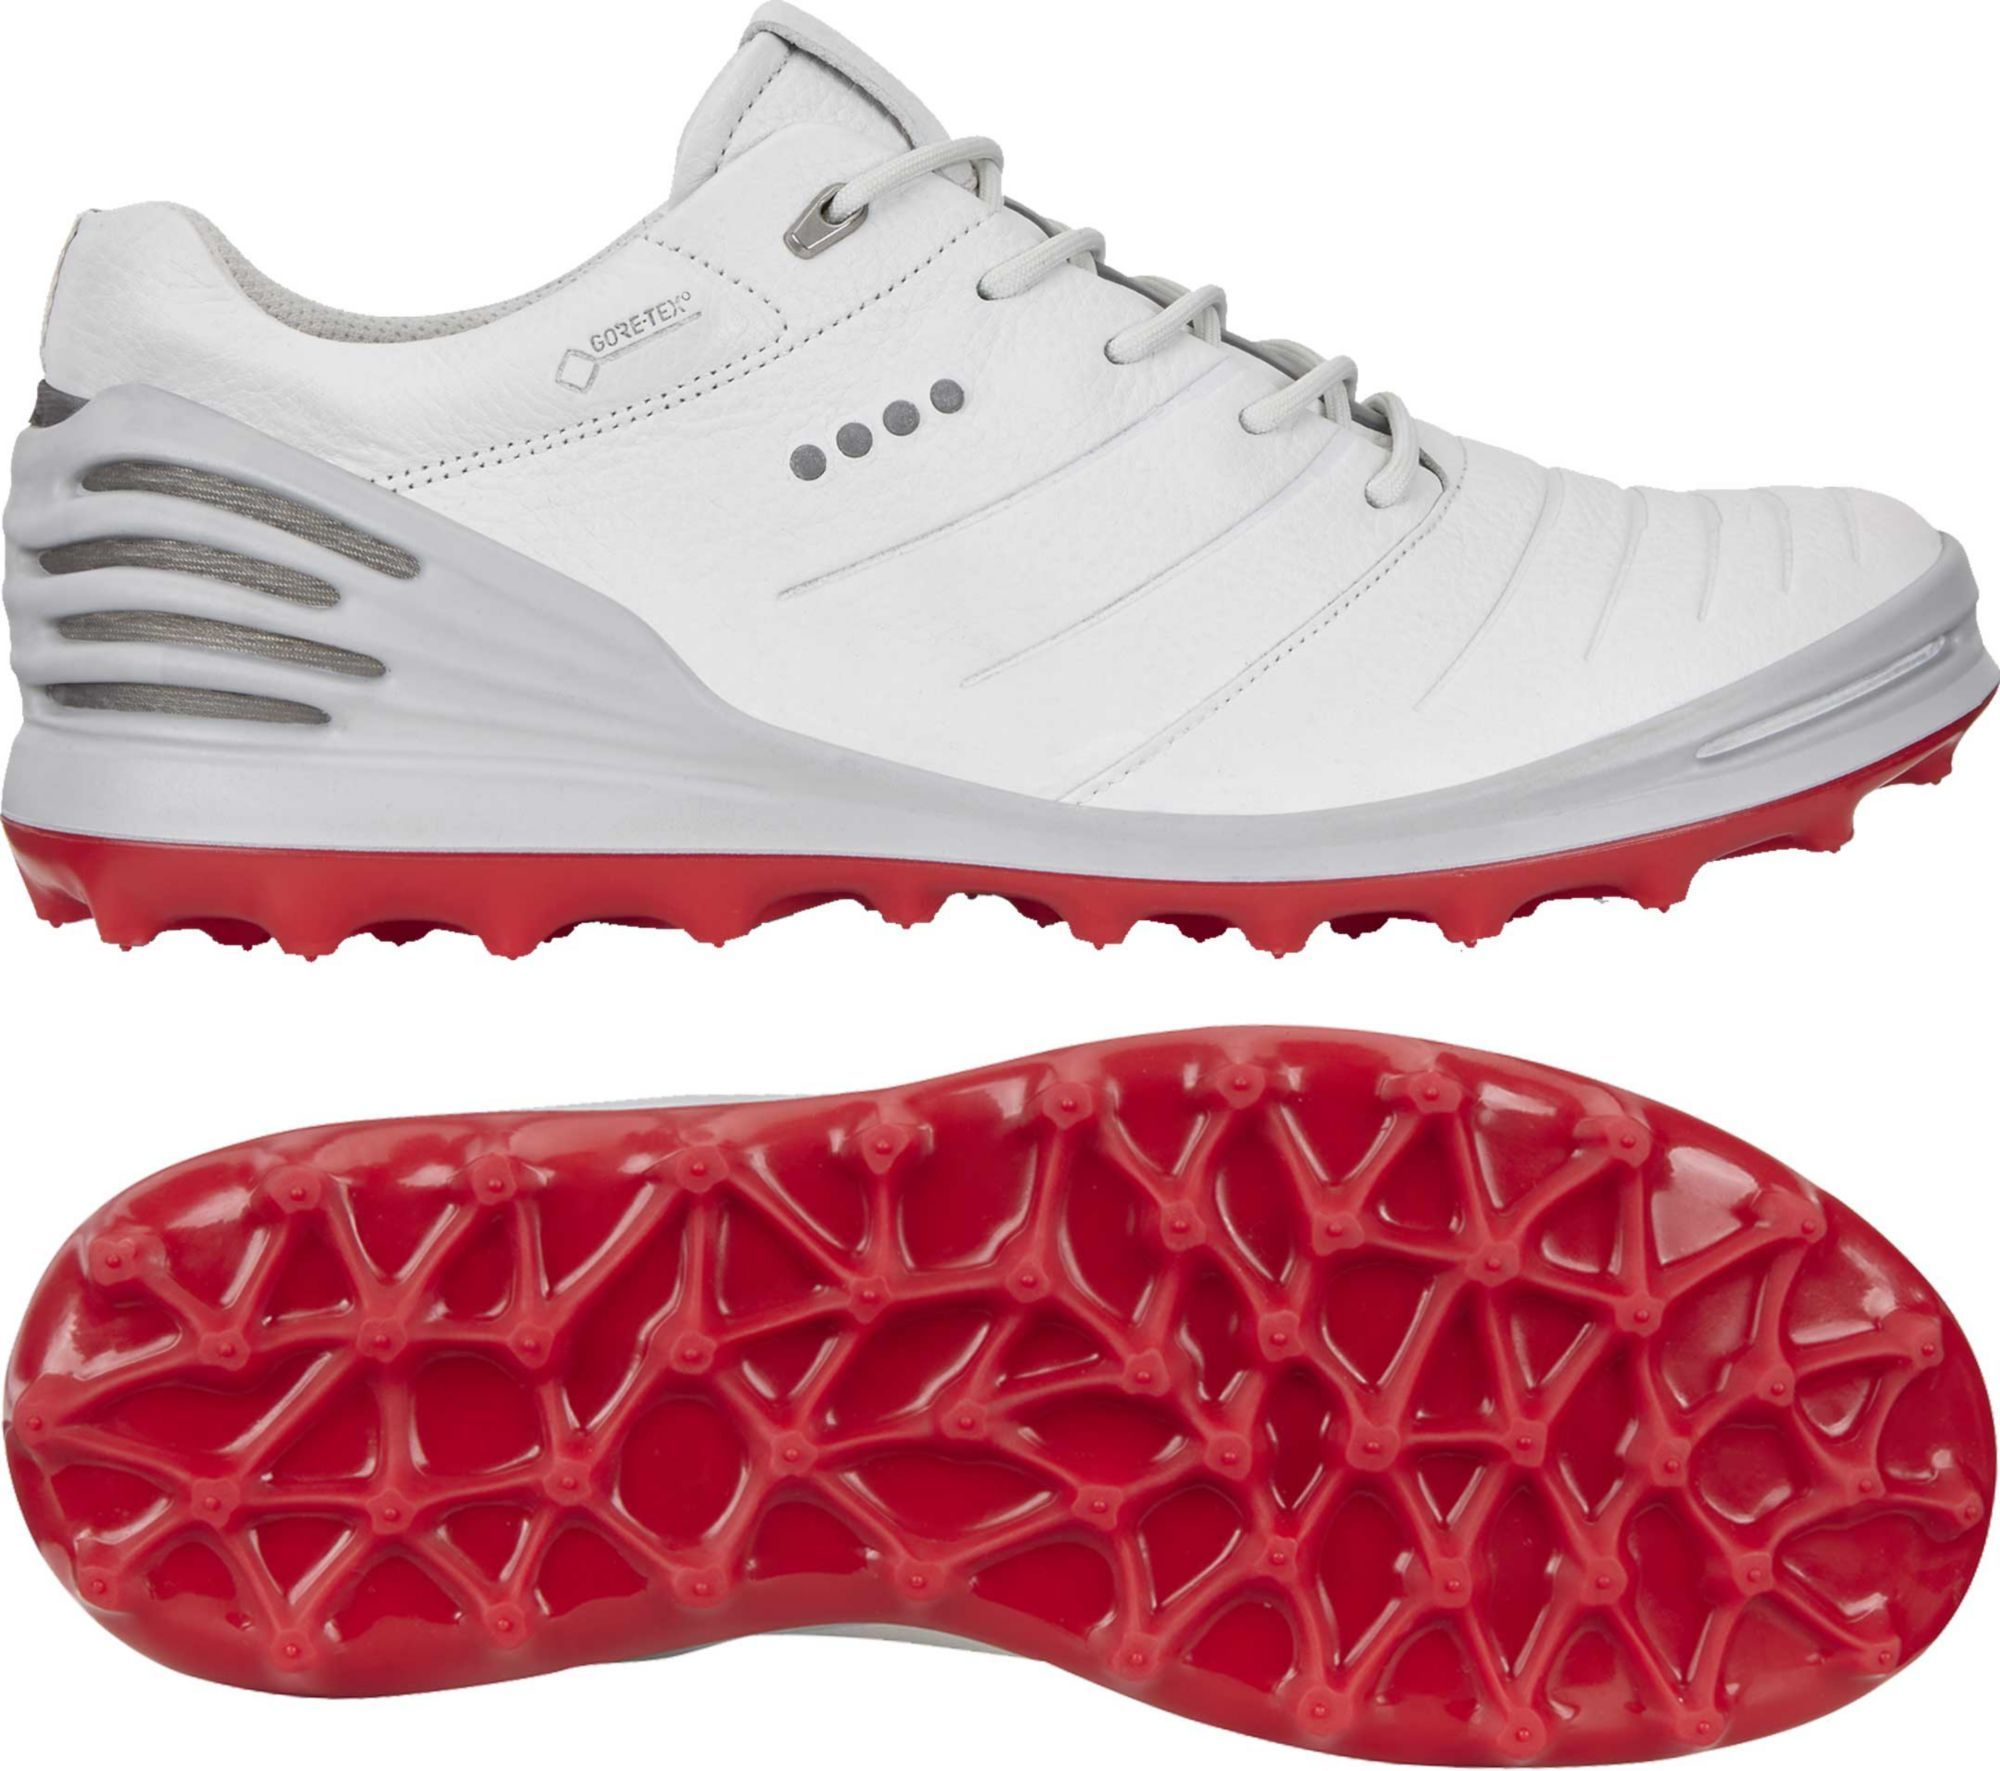 Ecco Men S Cage Pro Golf Shoes Golf Fashion Womens Golf Shirts Golf Outfit